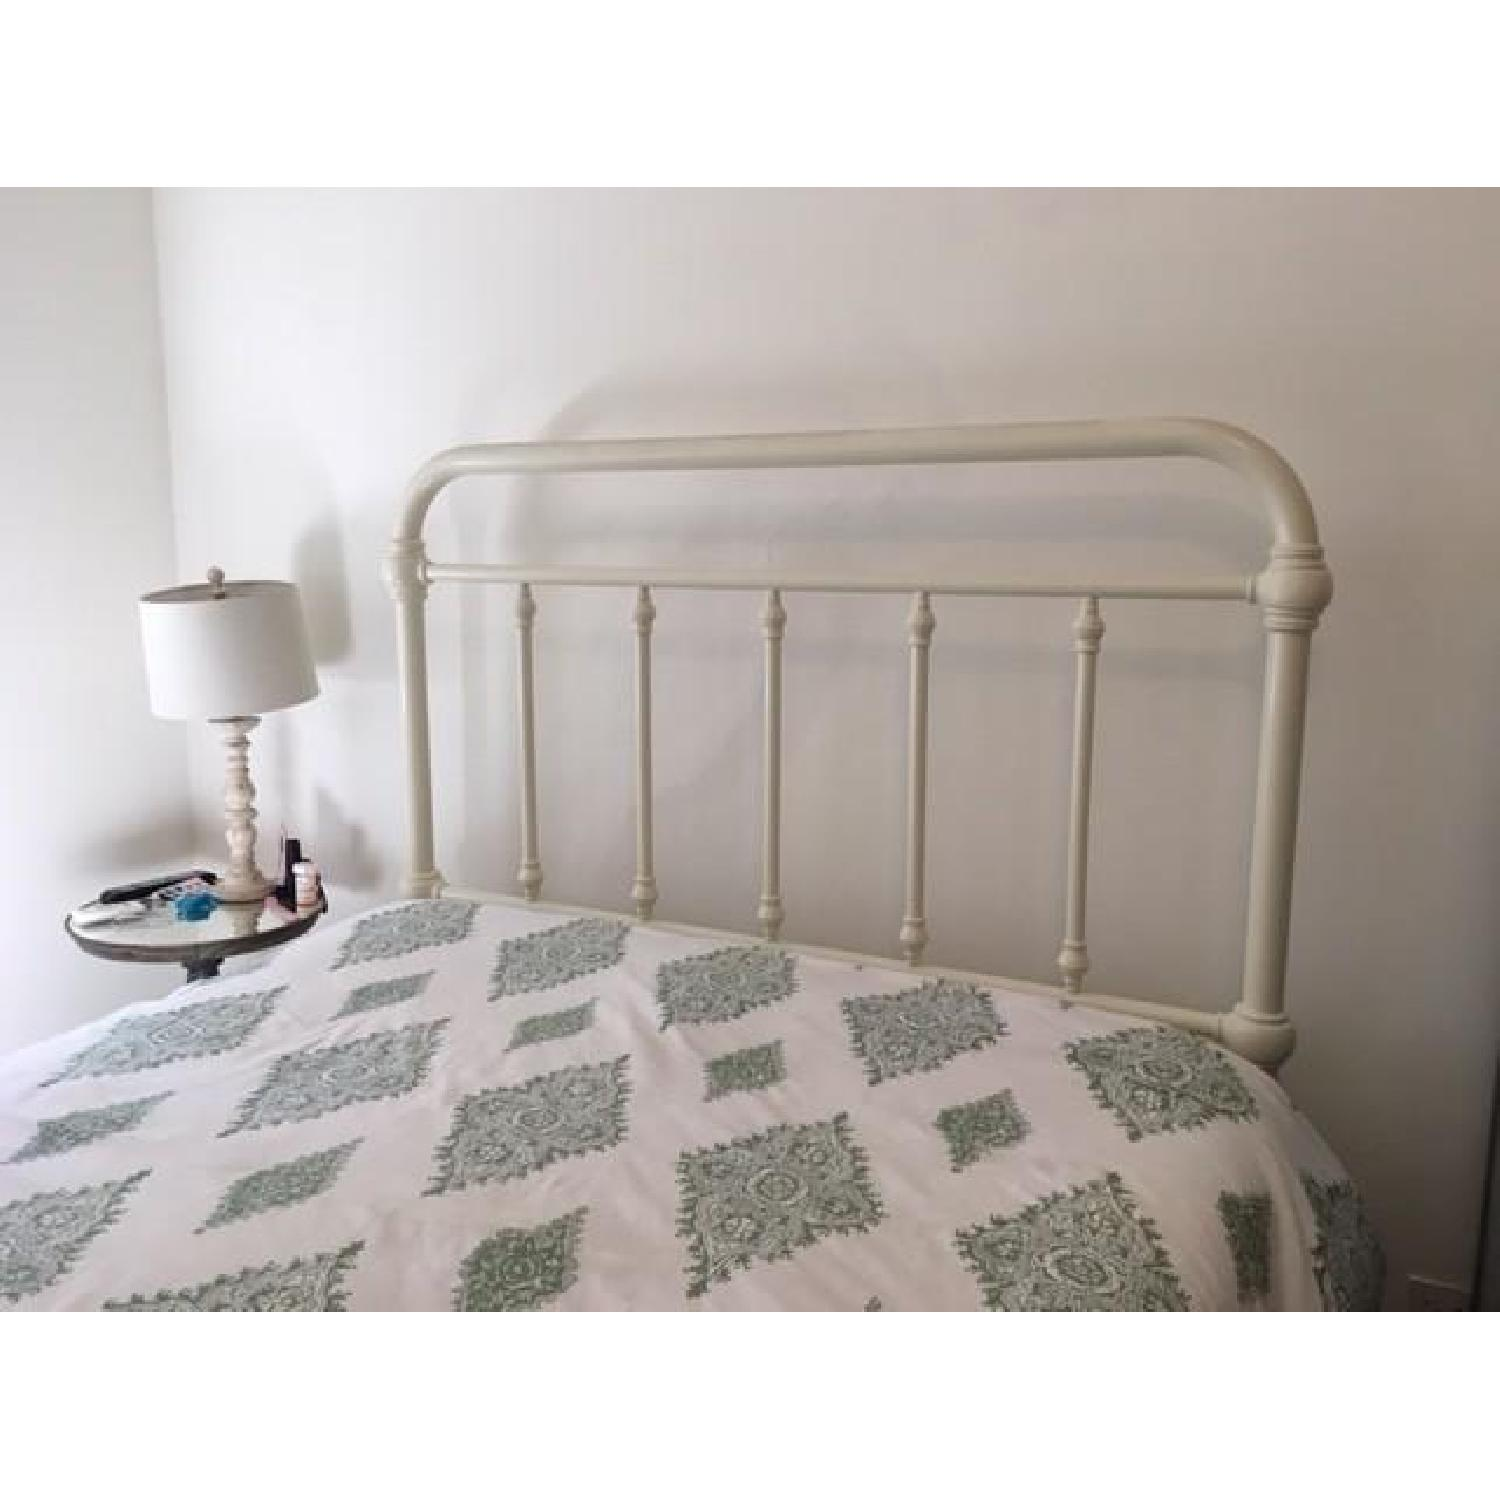 Pottery Barn Coleman White Iron Queen Bed Frame - image-1